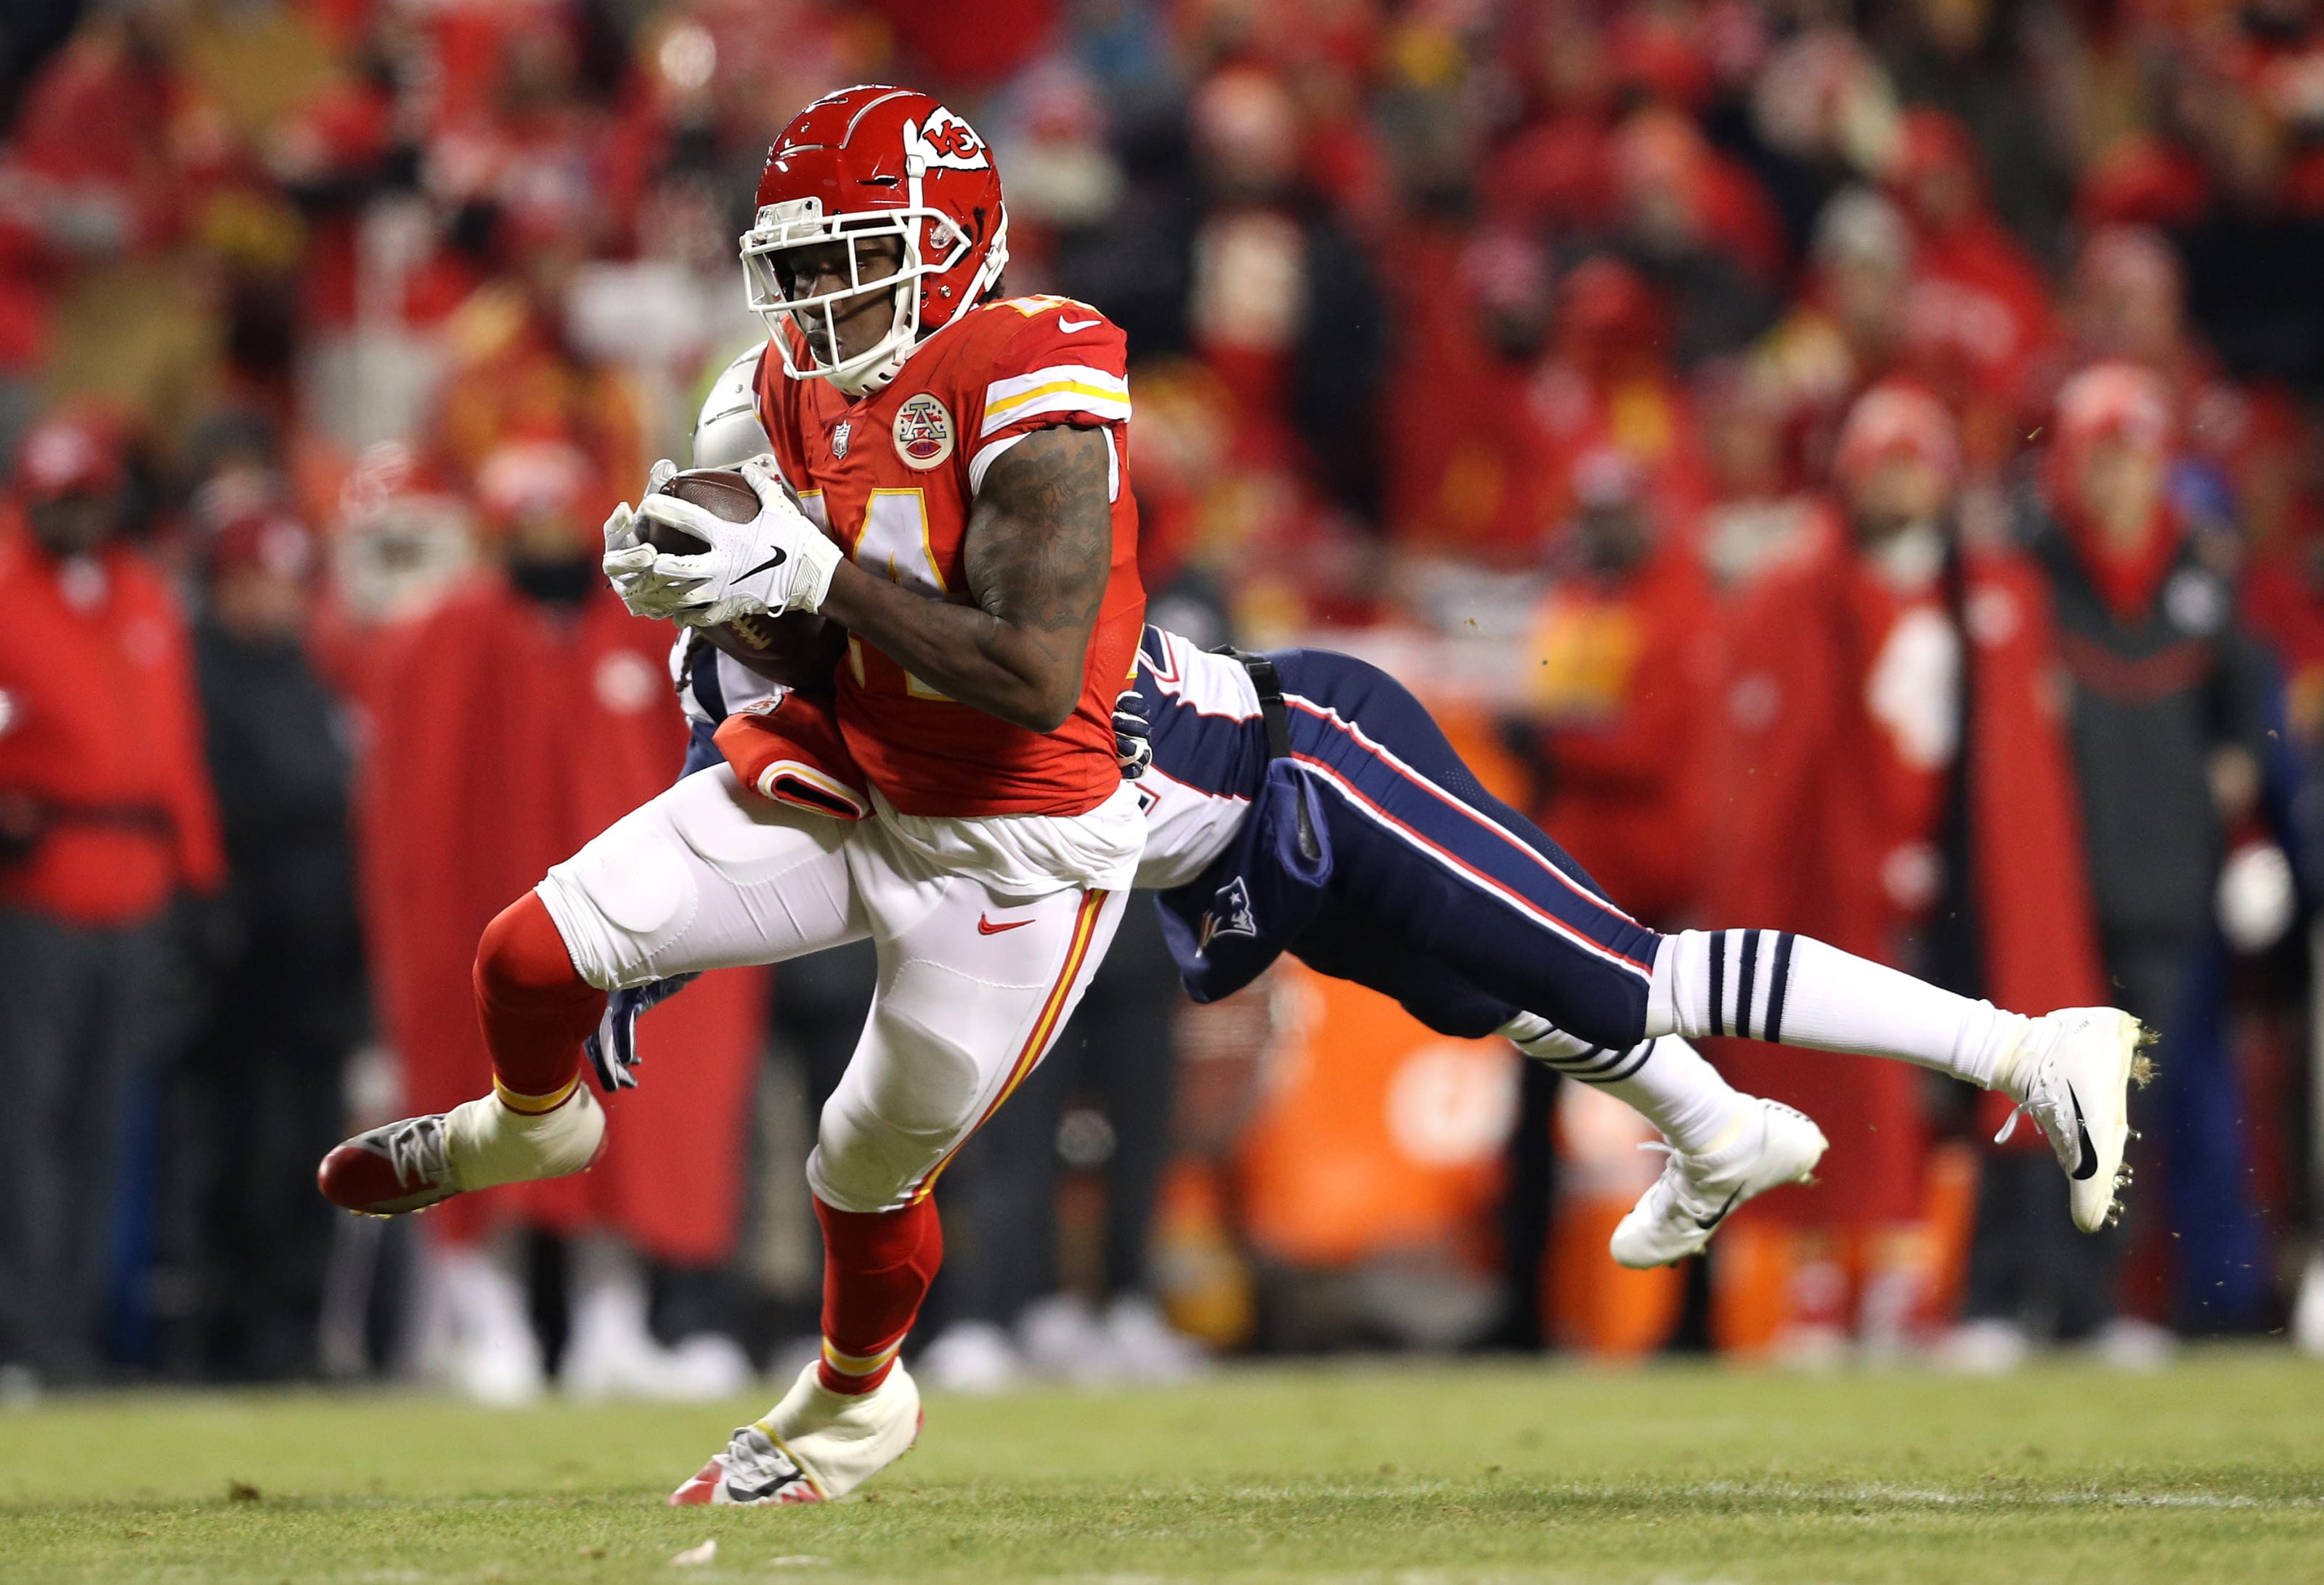 Kc Chiefs Good Bad Ugly Vs Patriots In Afc Championship Game